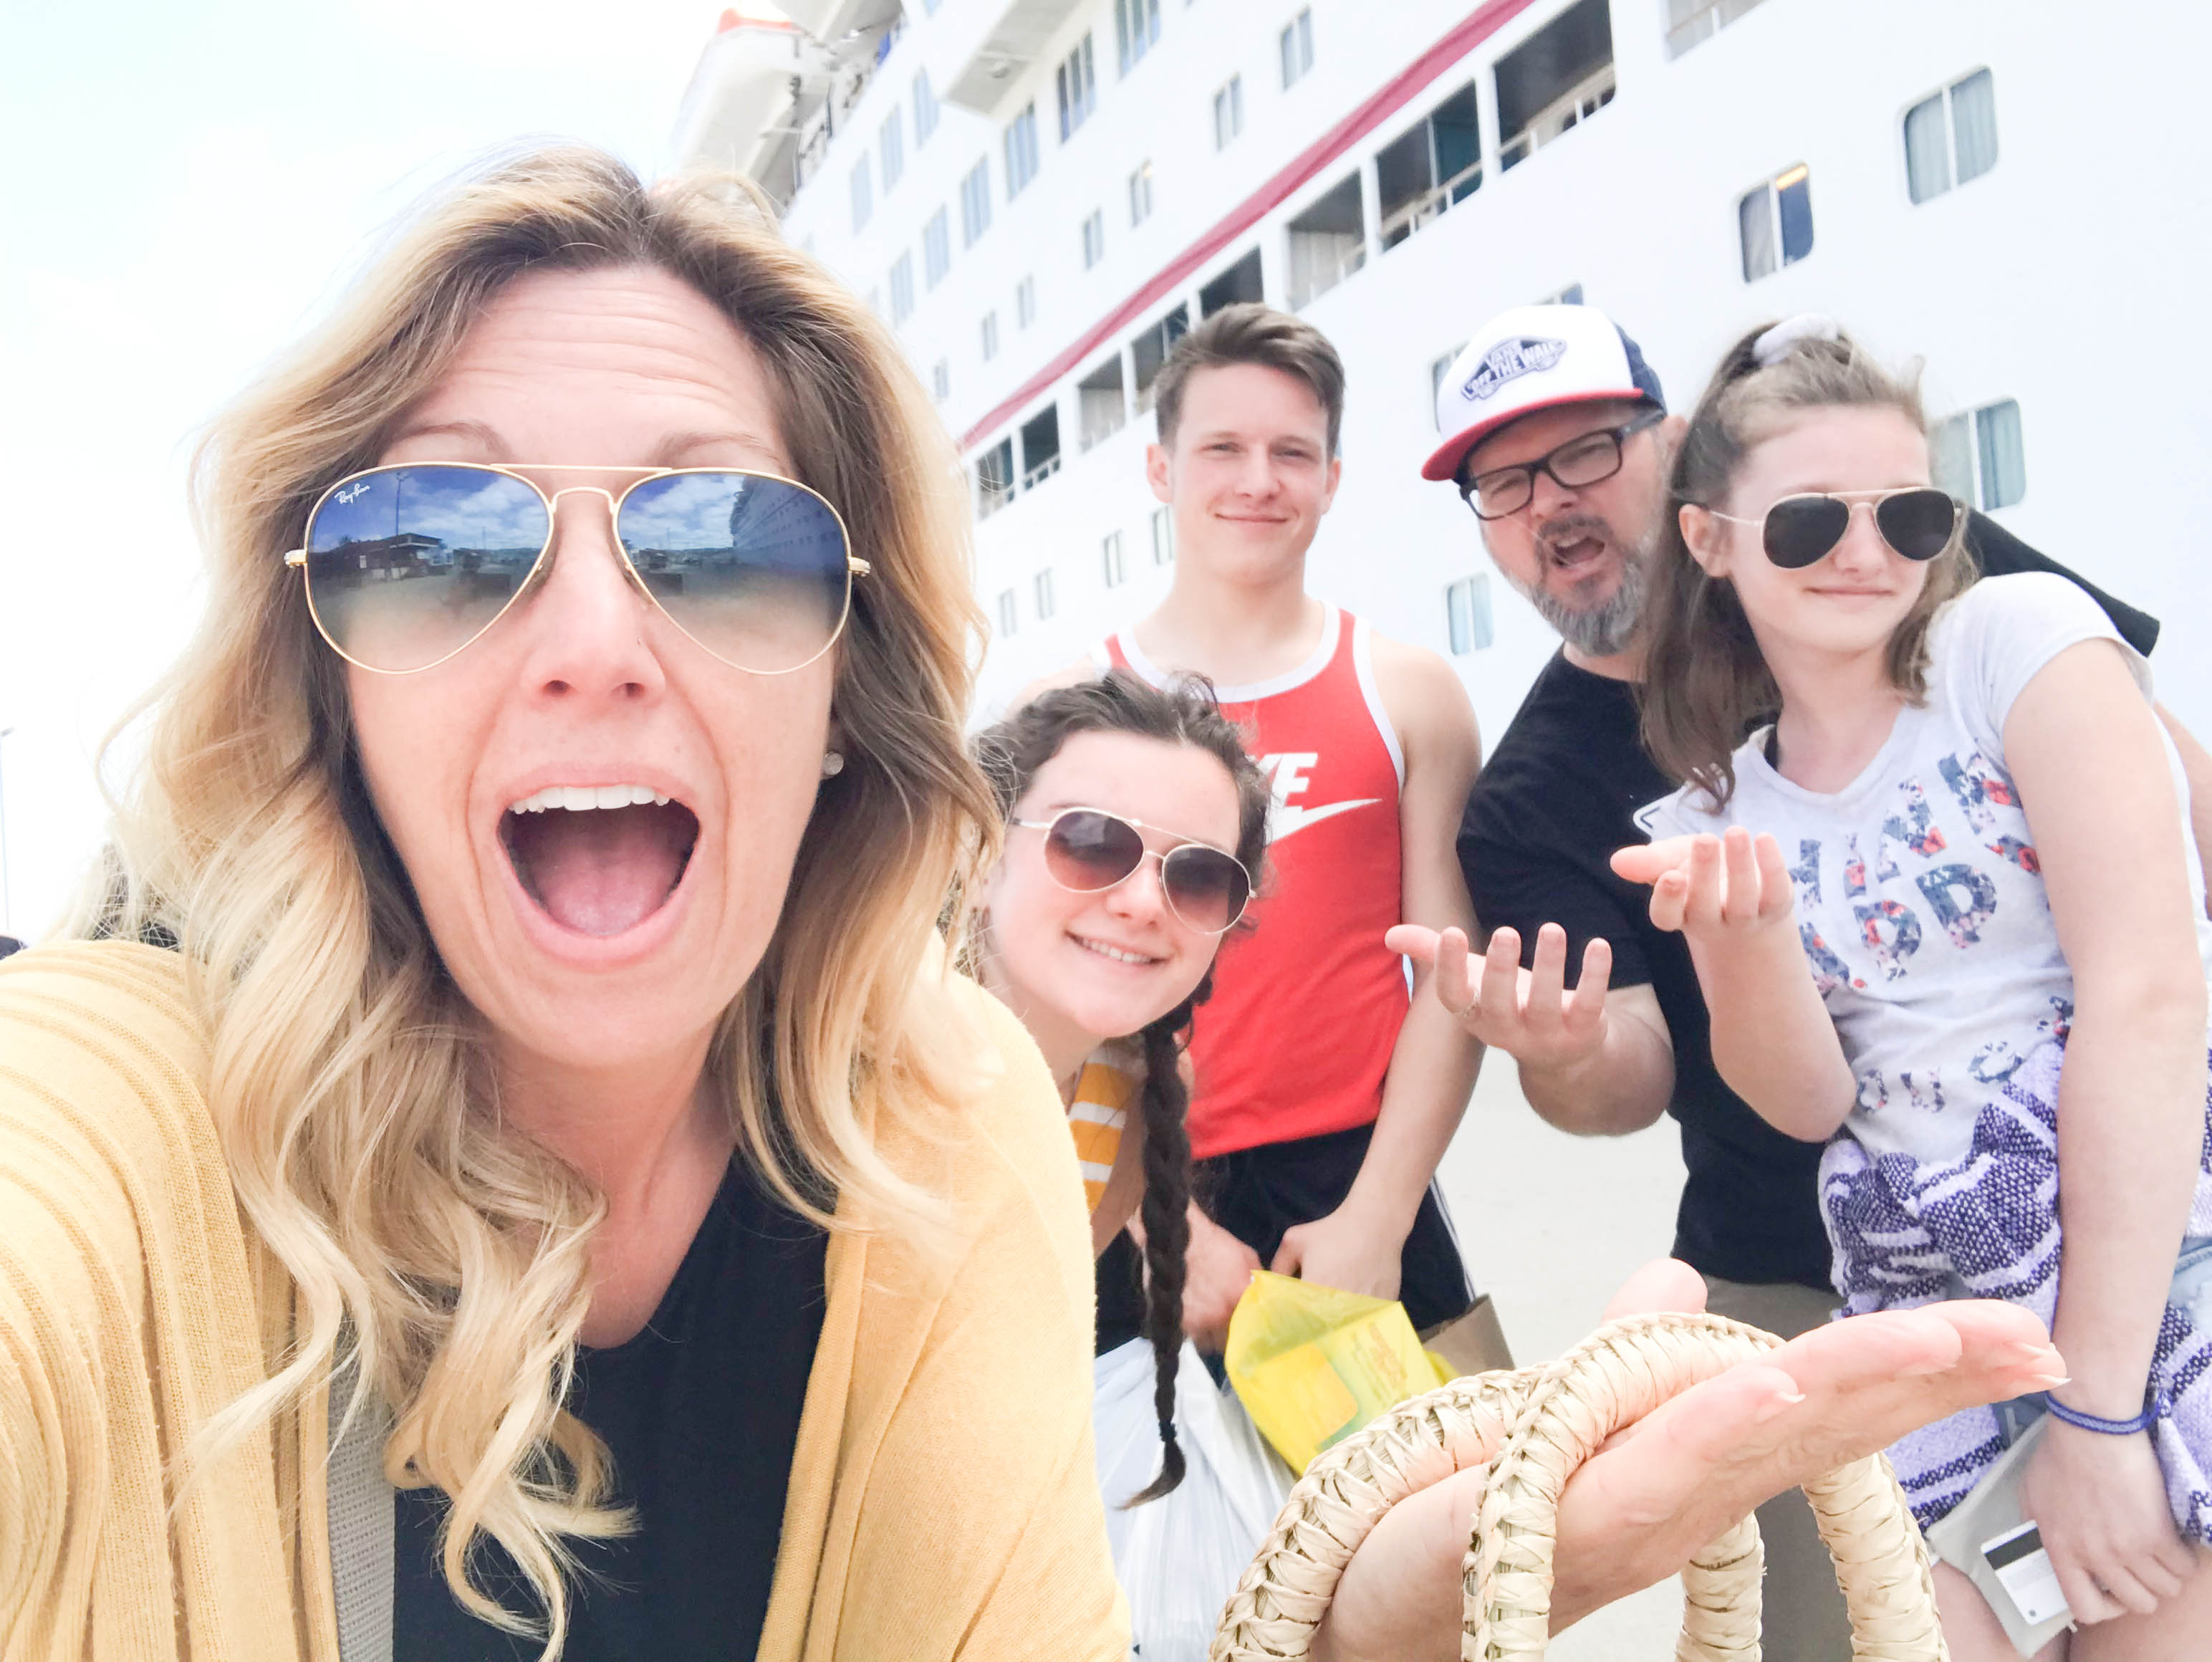 Family Vacation in Los Angeles: 3 Day Cruise to Ensenada